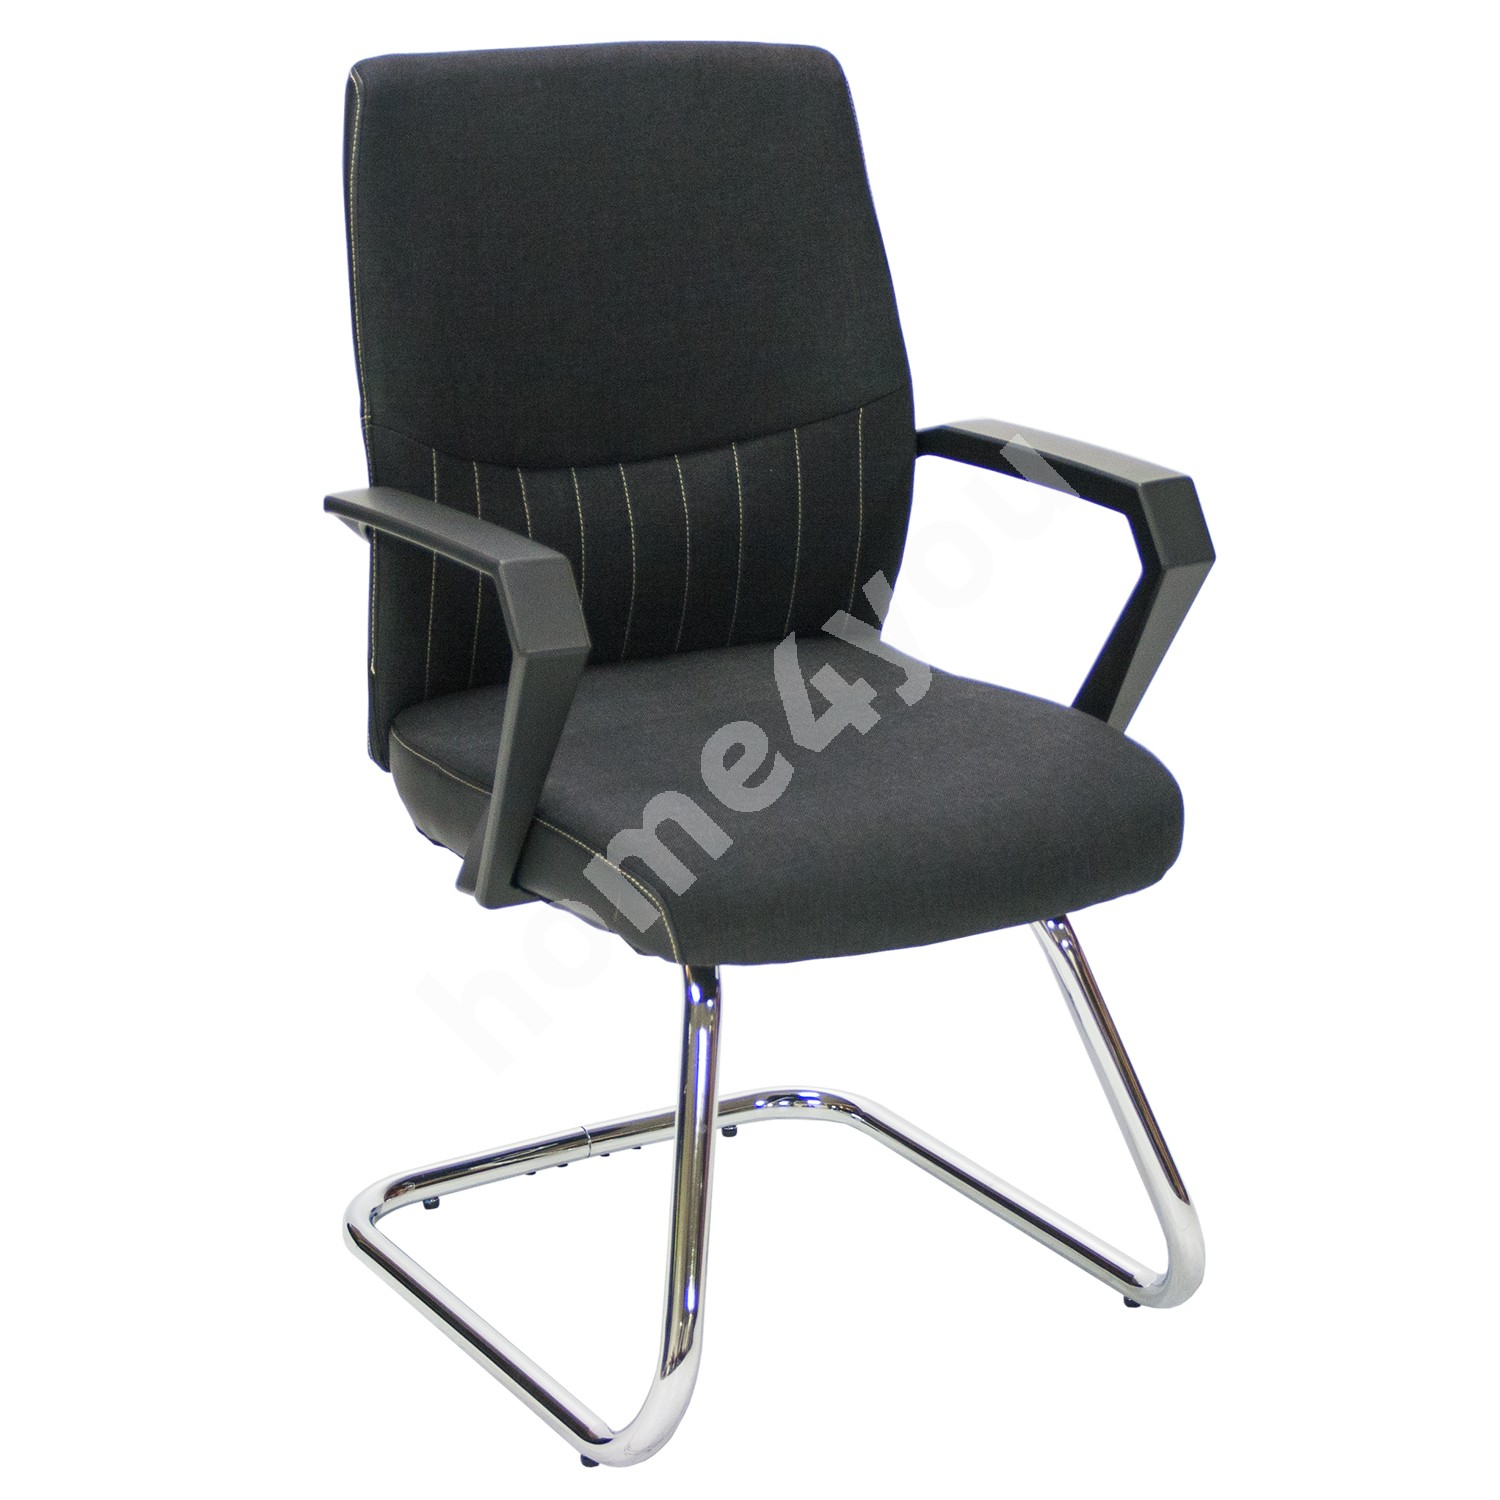 Quest chair ANGELO 58x57xH90cm, seat and back rest: fabric, color: black, frame: chromed